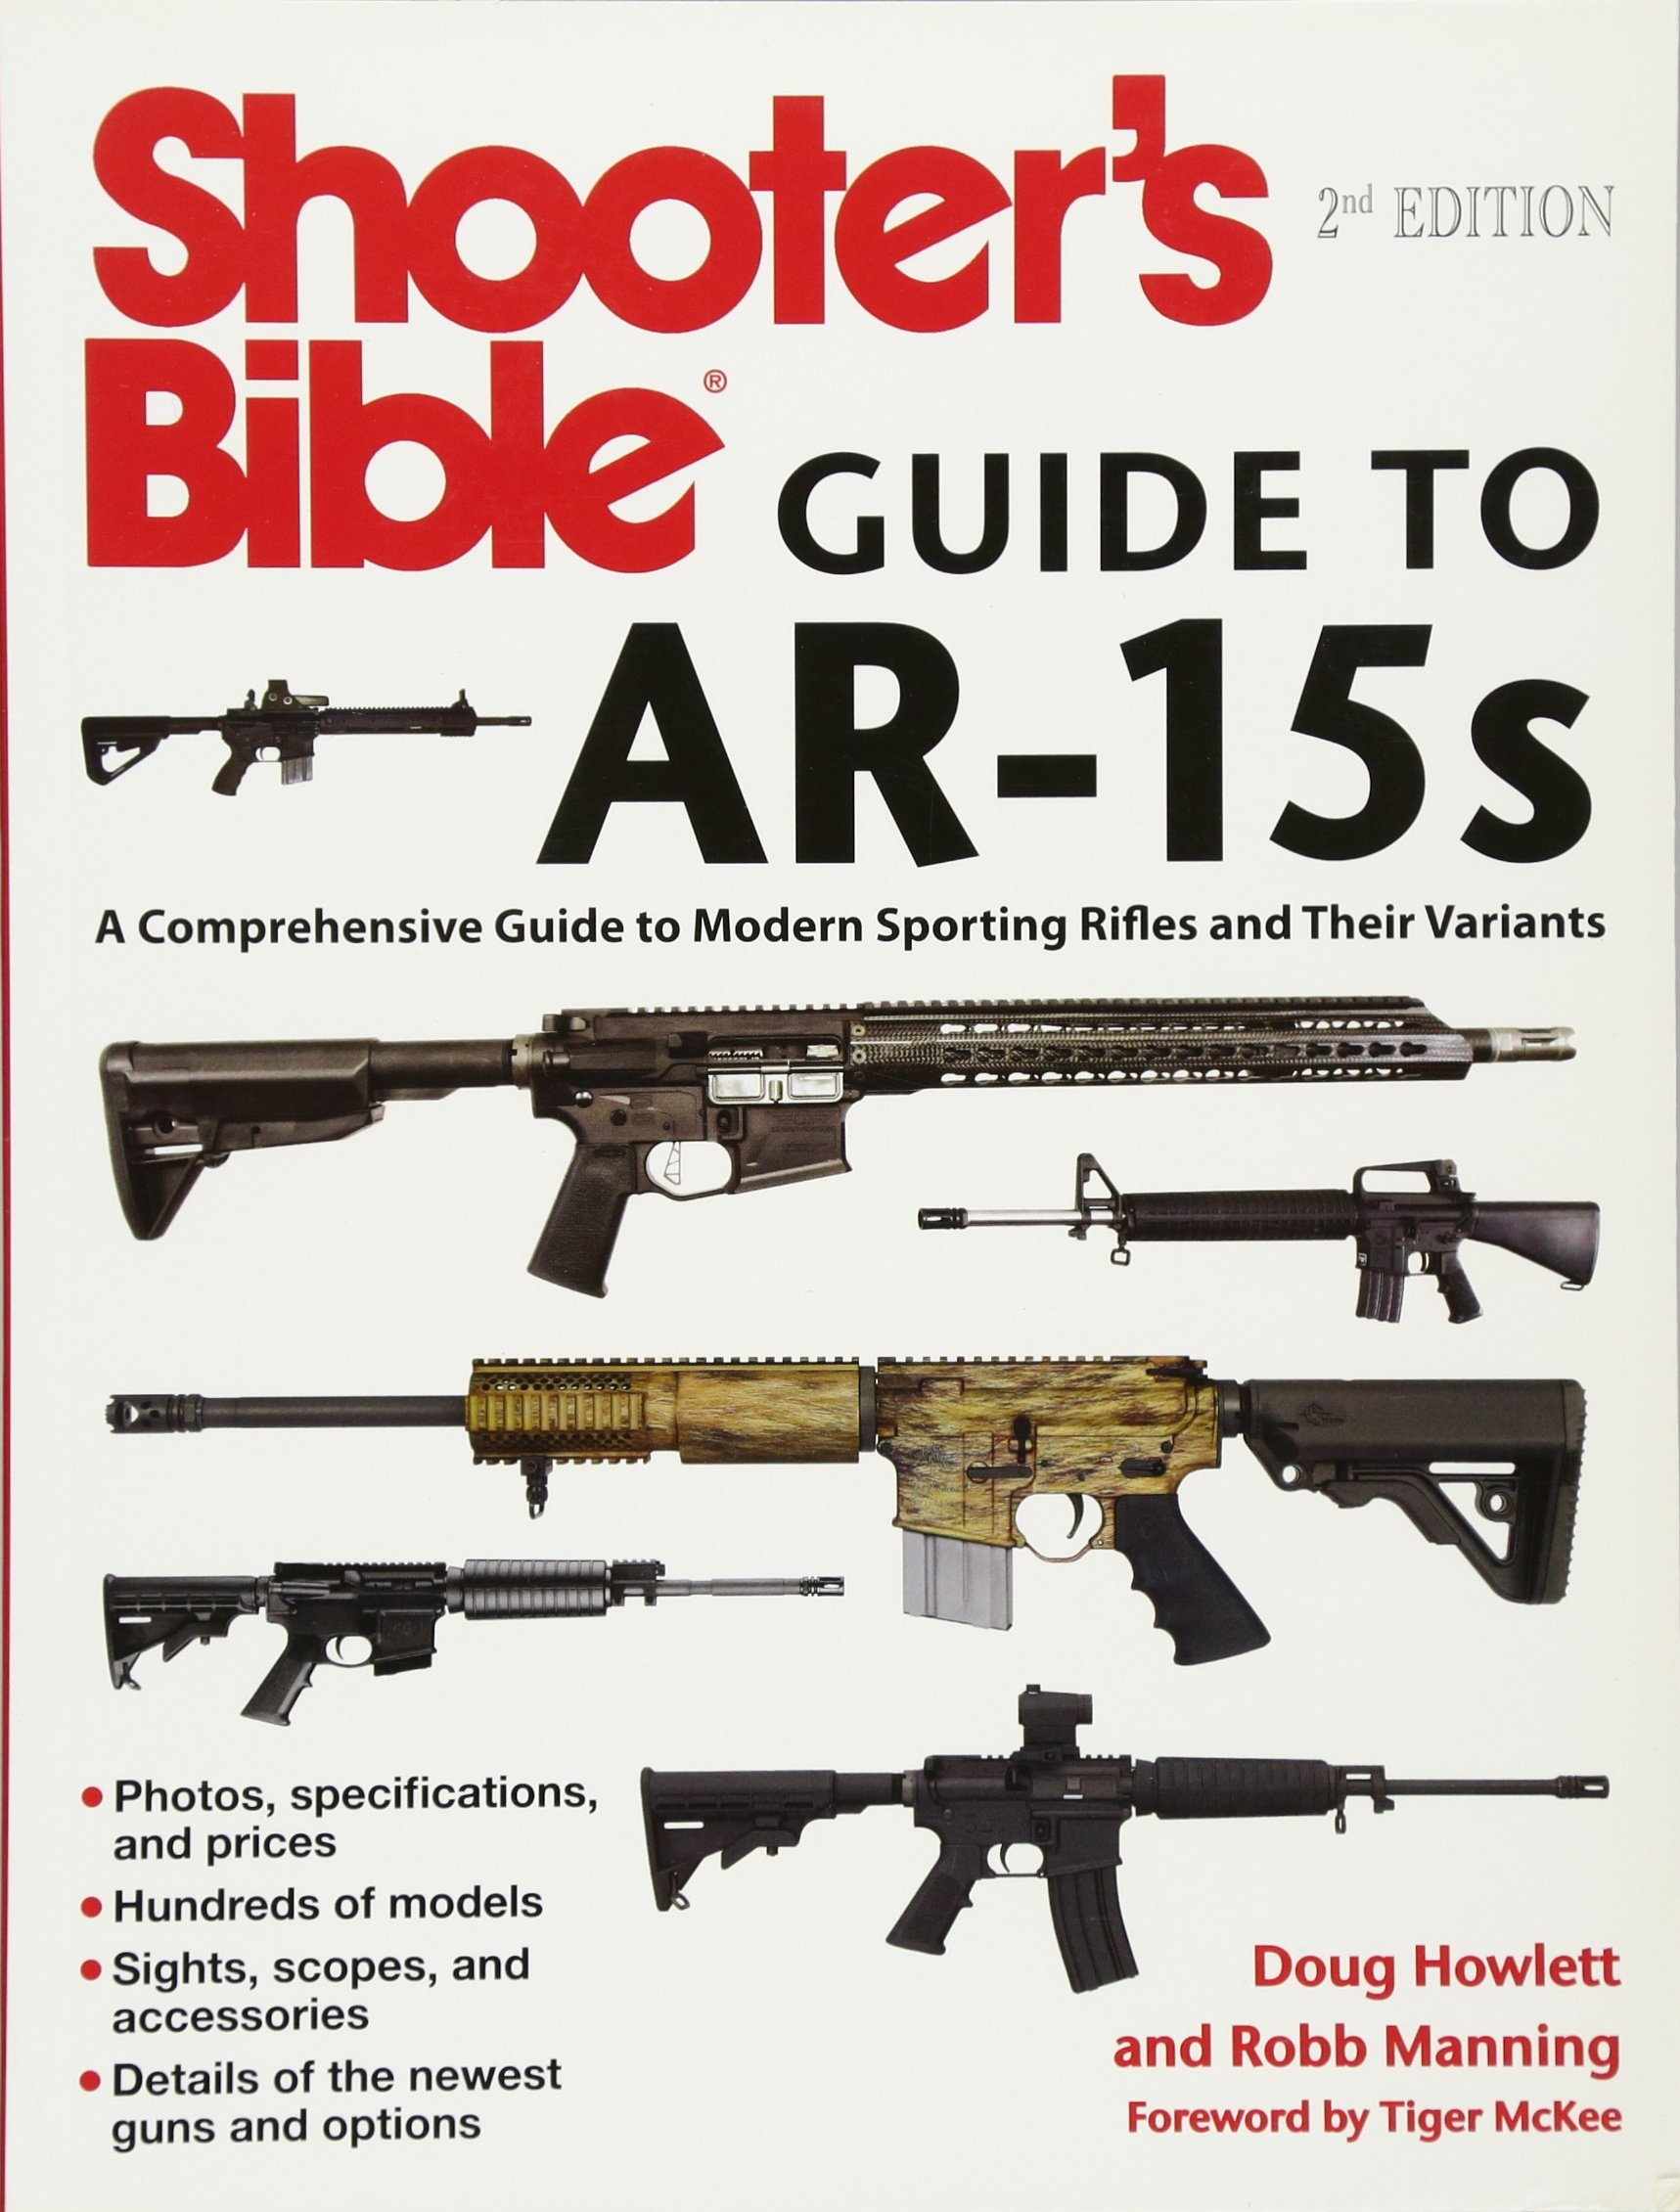 Amazon.com: Shooter's Bible Guide to AR-15s, 2nd Edition: A Comprehensive  Guide to Modern Sporting Rifles and Their Variants (9781510710979): Doug  Howlett, ...